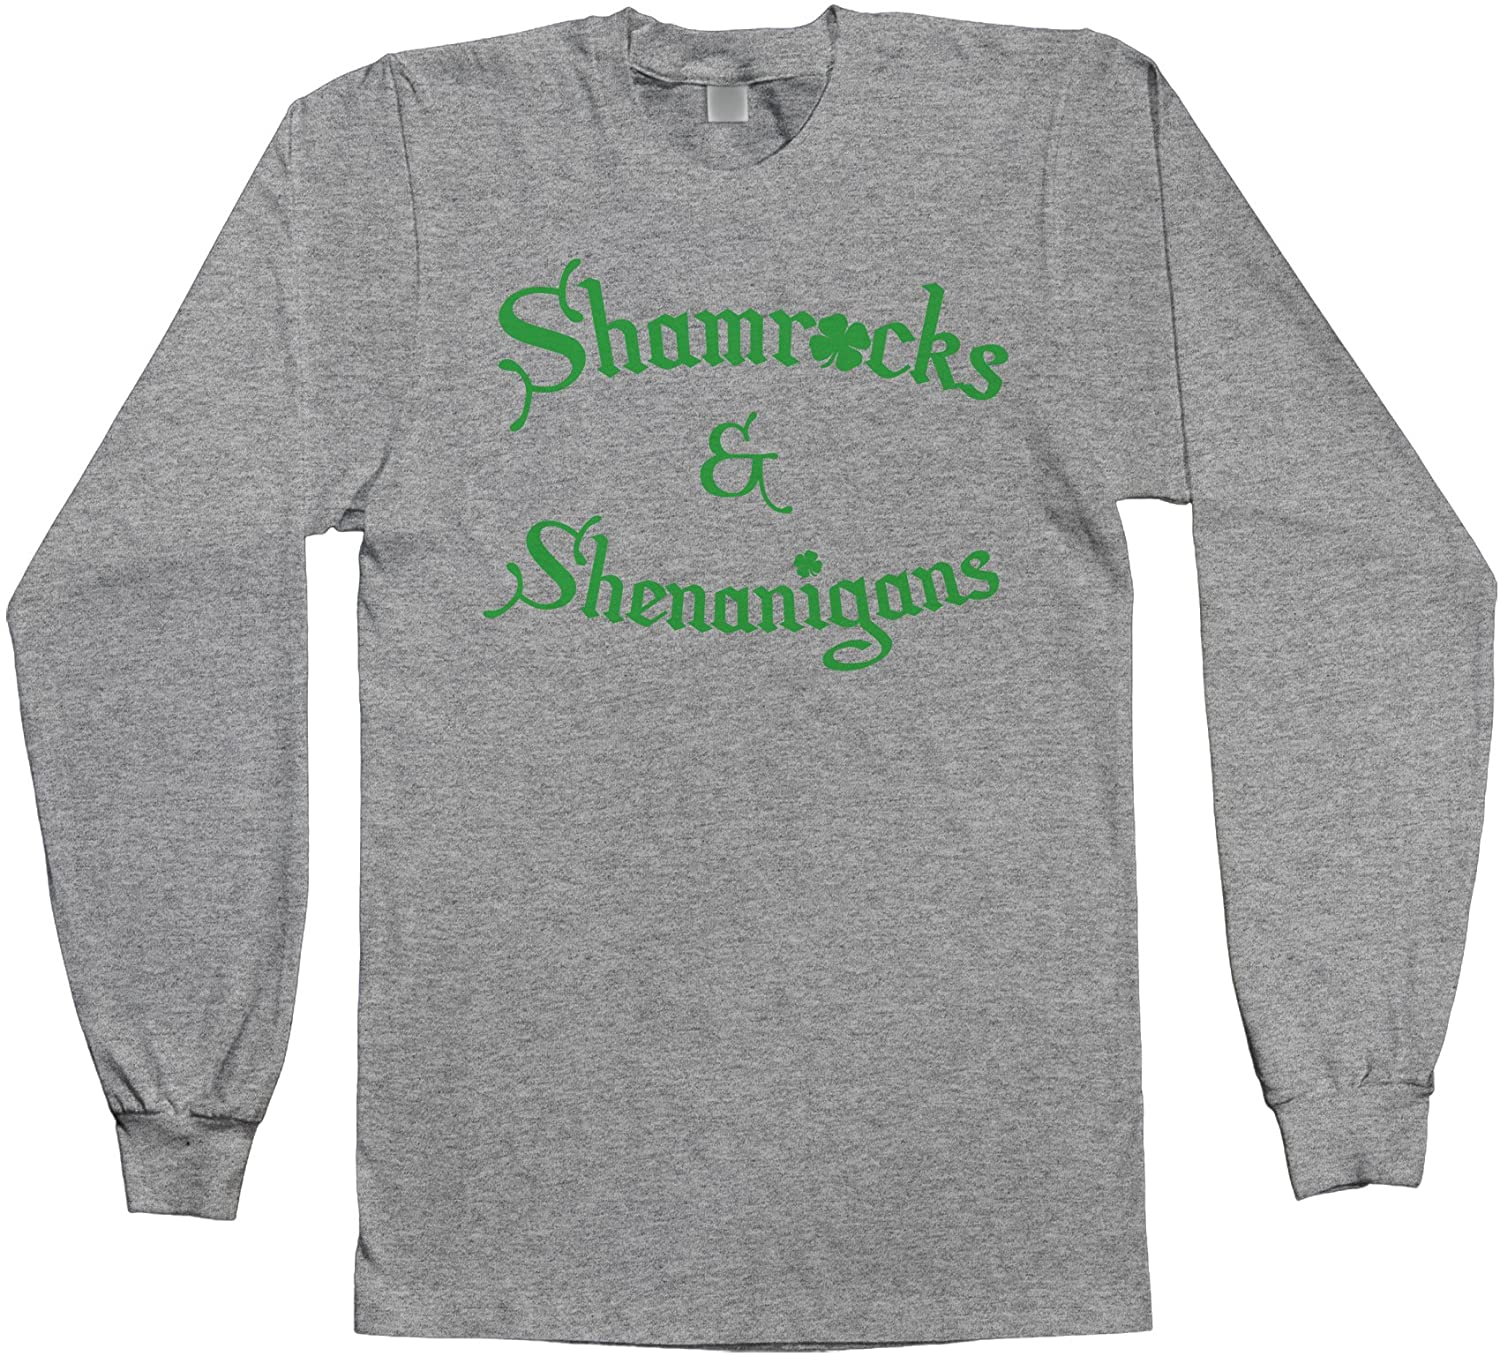 Threadrock Mens Shamrocks & Shenanigans Long Sleeve T-Shirt